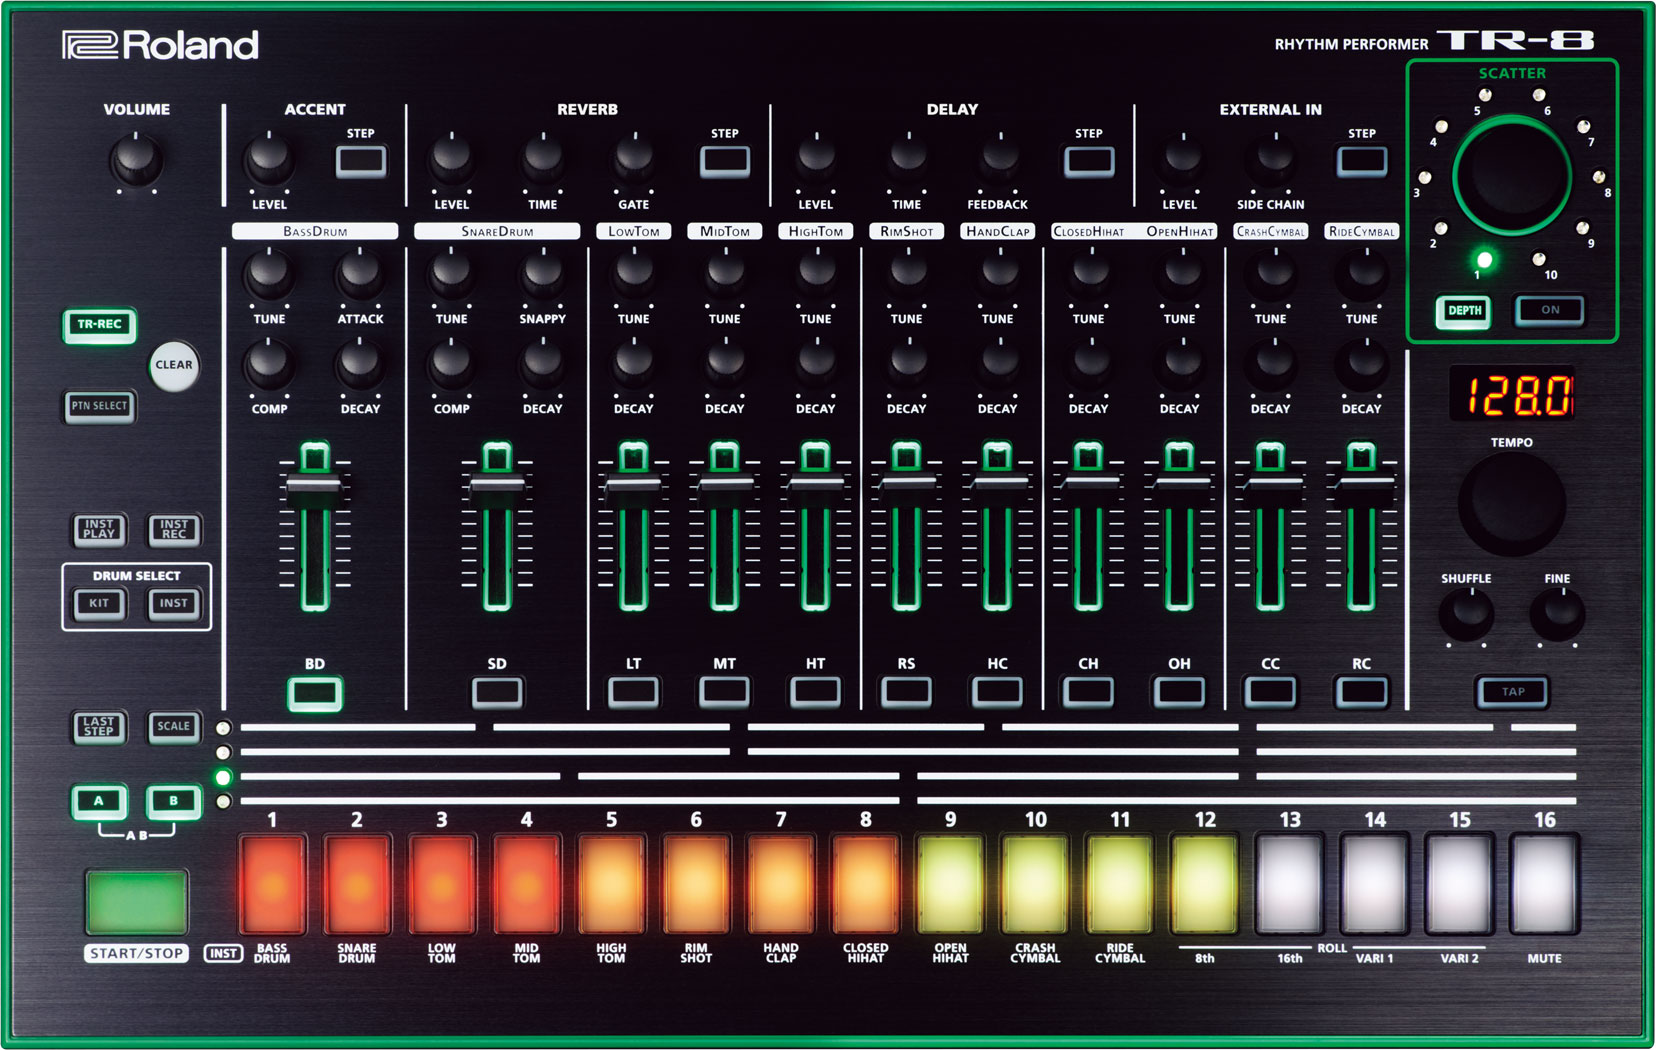 75e862a1b72321 This is the next step in the evolution of Roland TR drum machines. It takes  the best features of the legendary TR-808 and TR-909 machines and couples  them ...